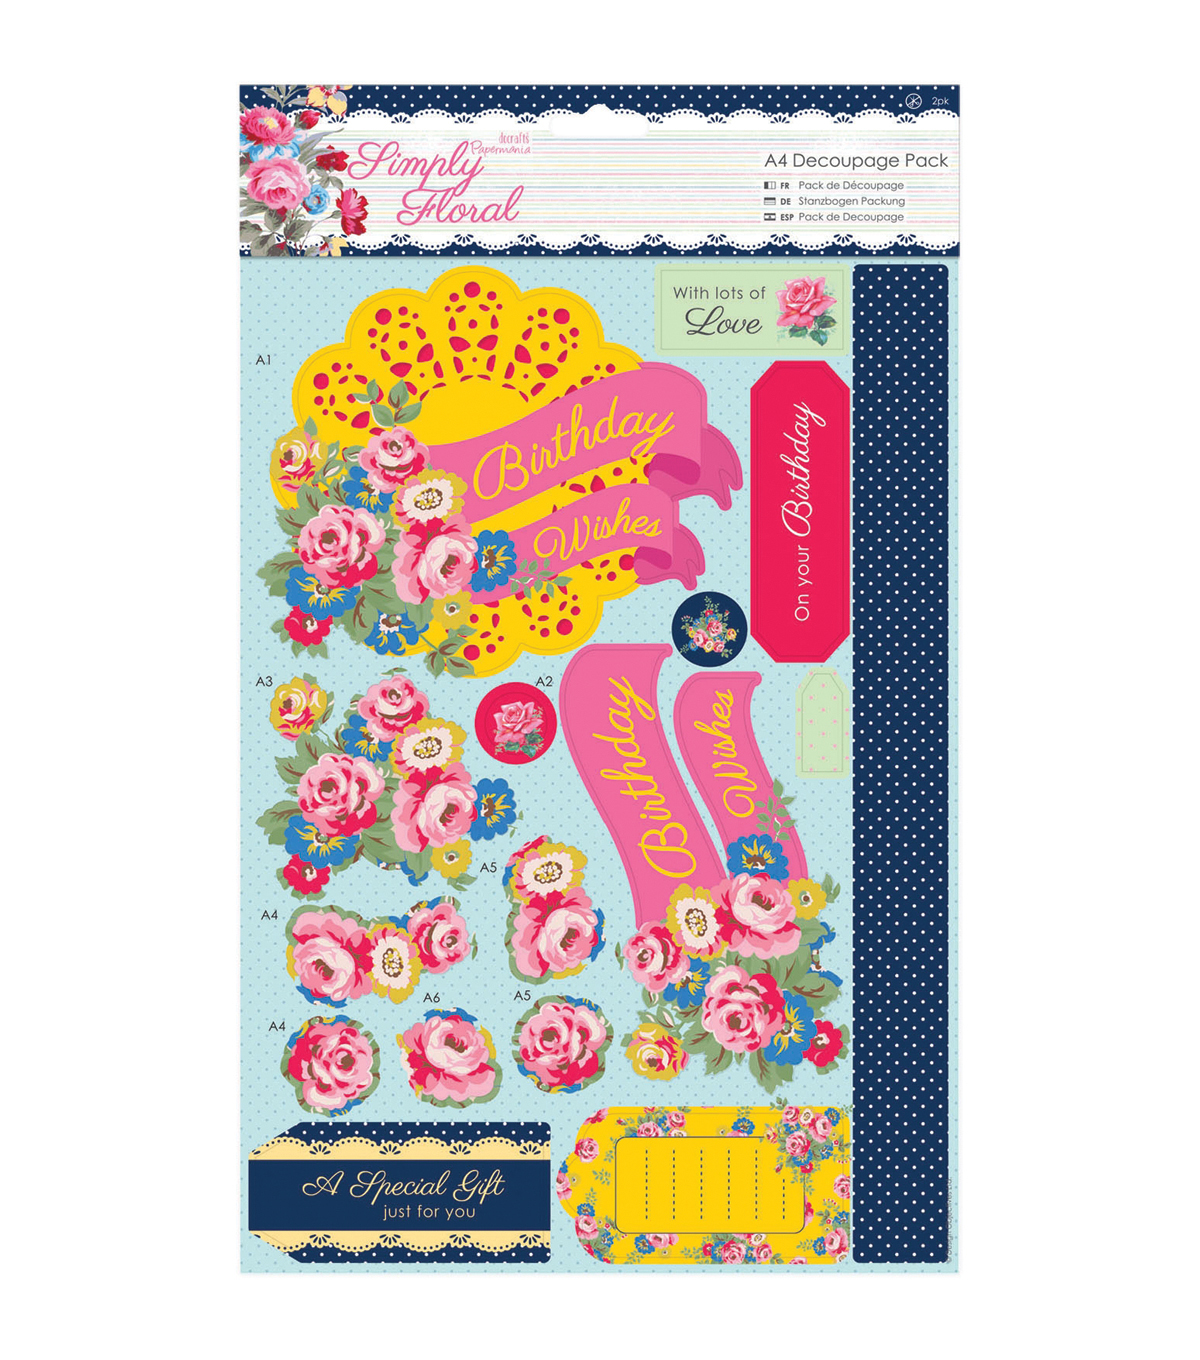 Papermania Simply Floral Bright Blooms A4 Decoupage Pack